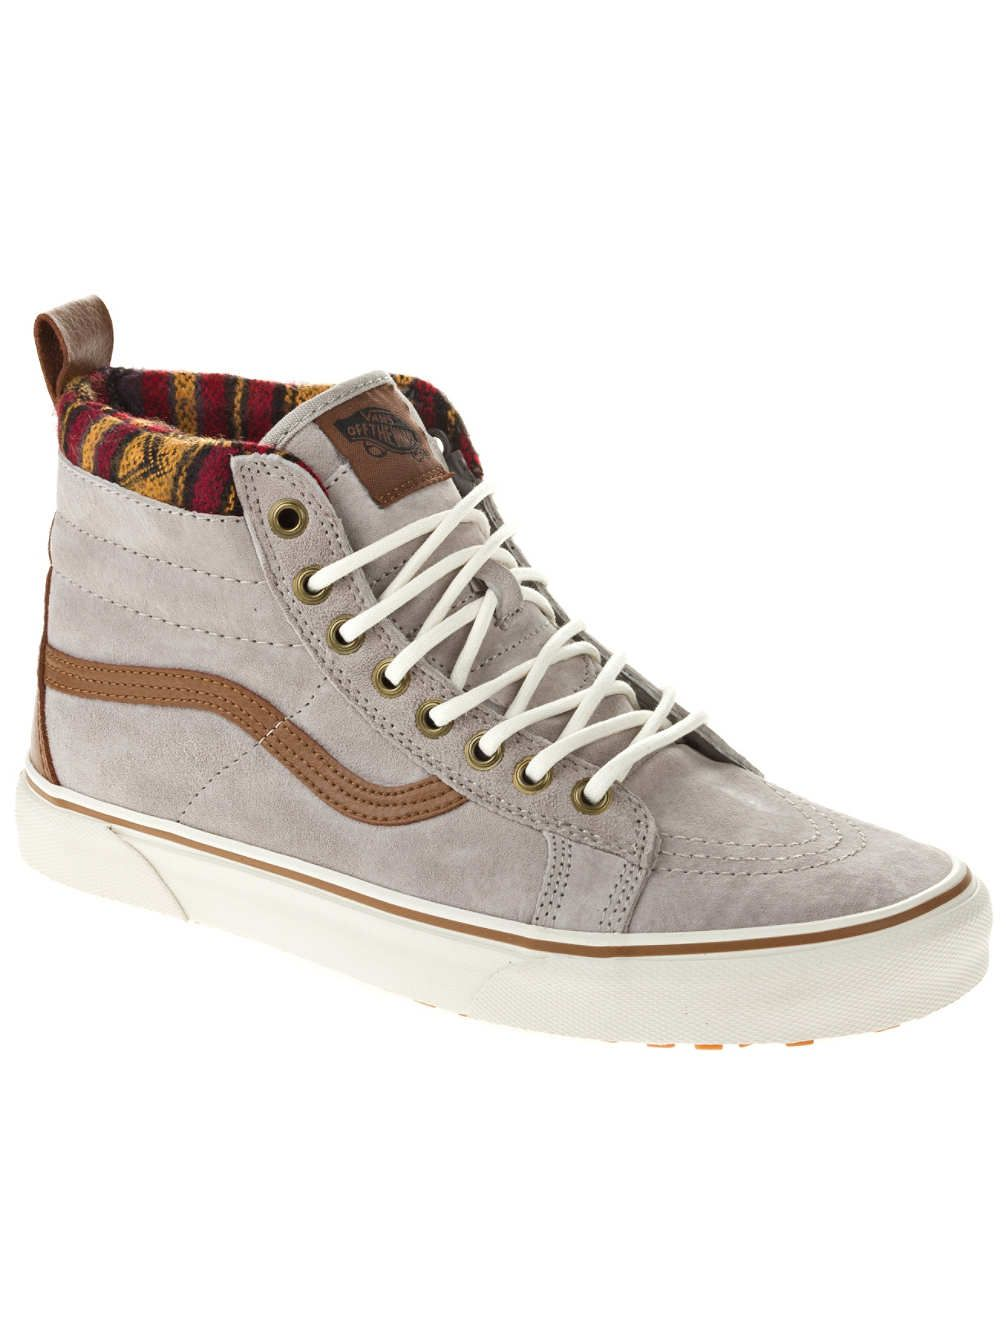 bd3fff4c68 Article number 284268 Vans Sk8-Hi MTE Shoes